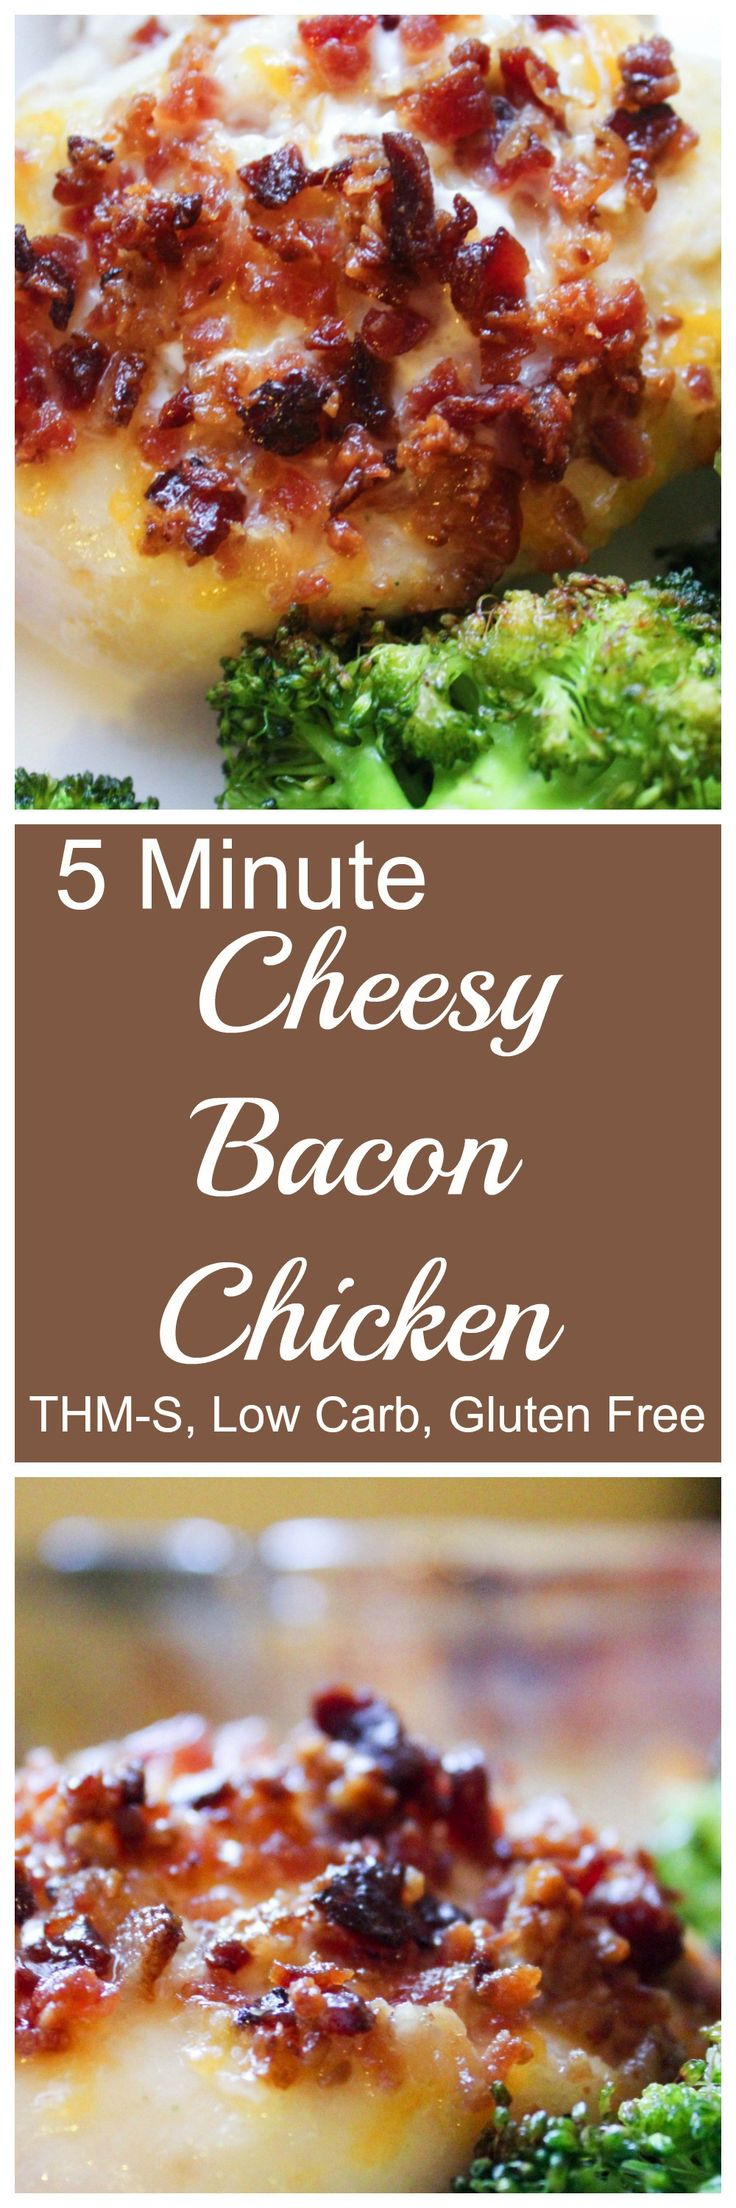 5 Minute Cheesy Bacon Chicken (THM-S, Low Carb)